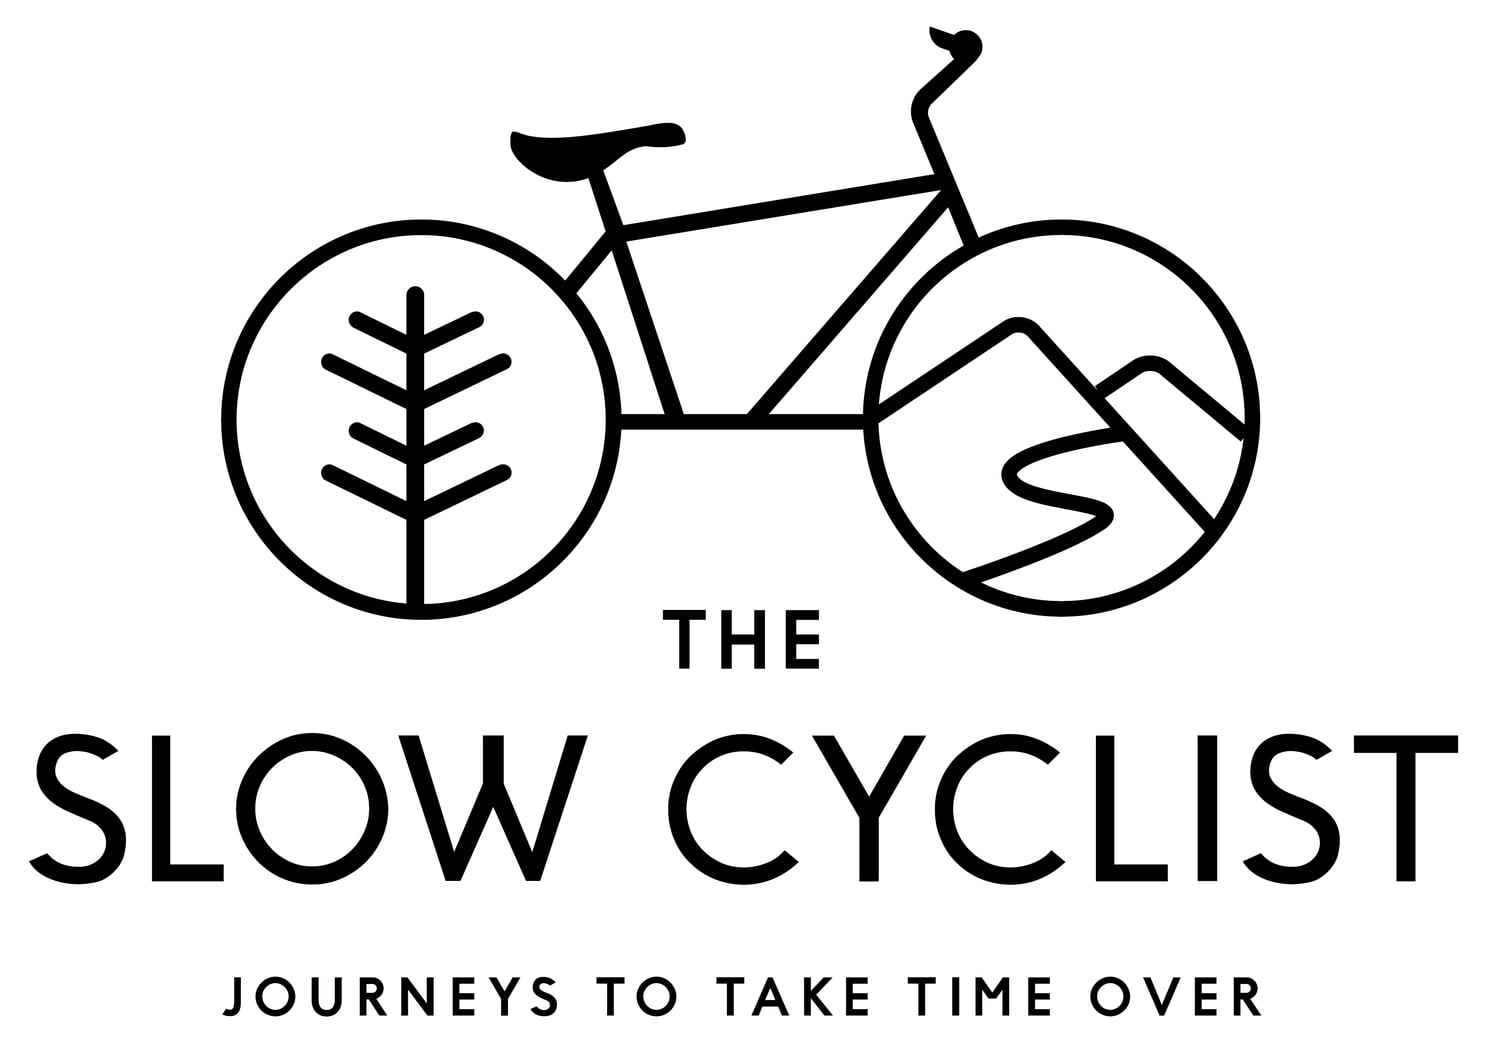 The Slow Cyclist